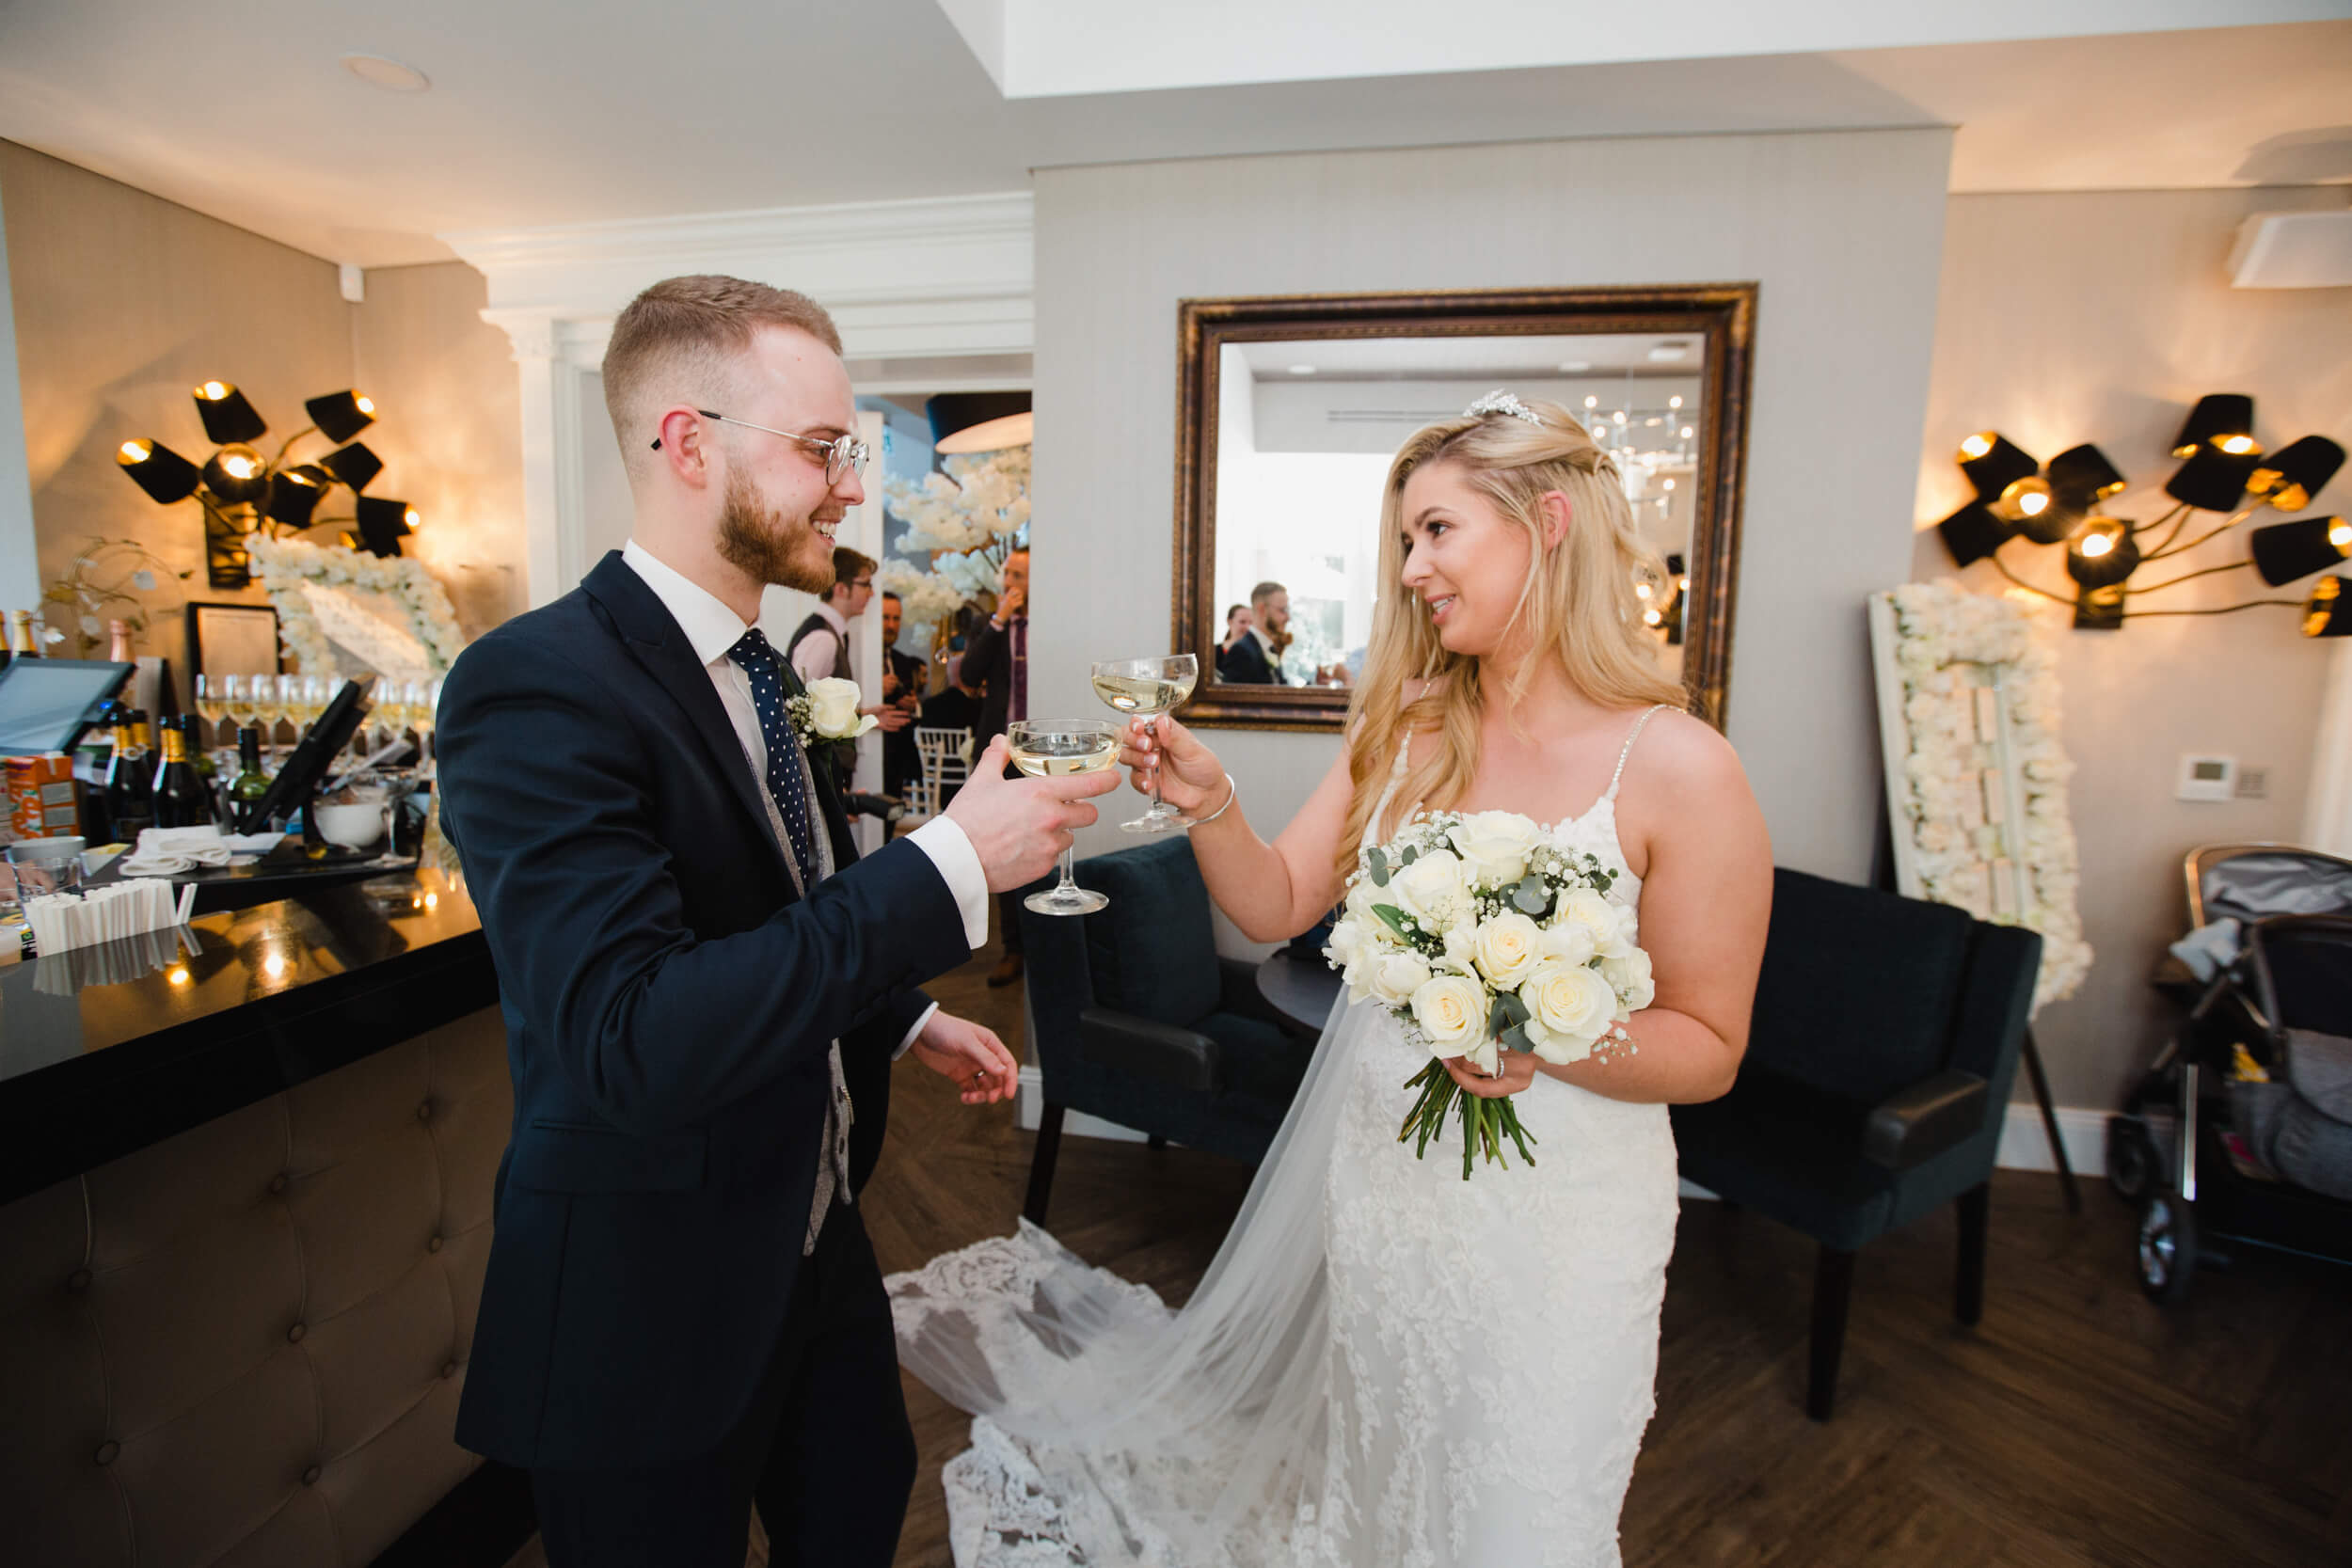 newlyweds celebrating with glasses of champagne